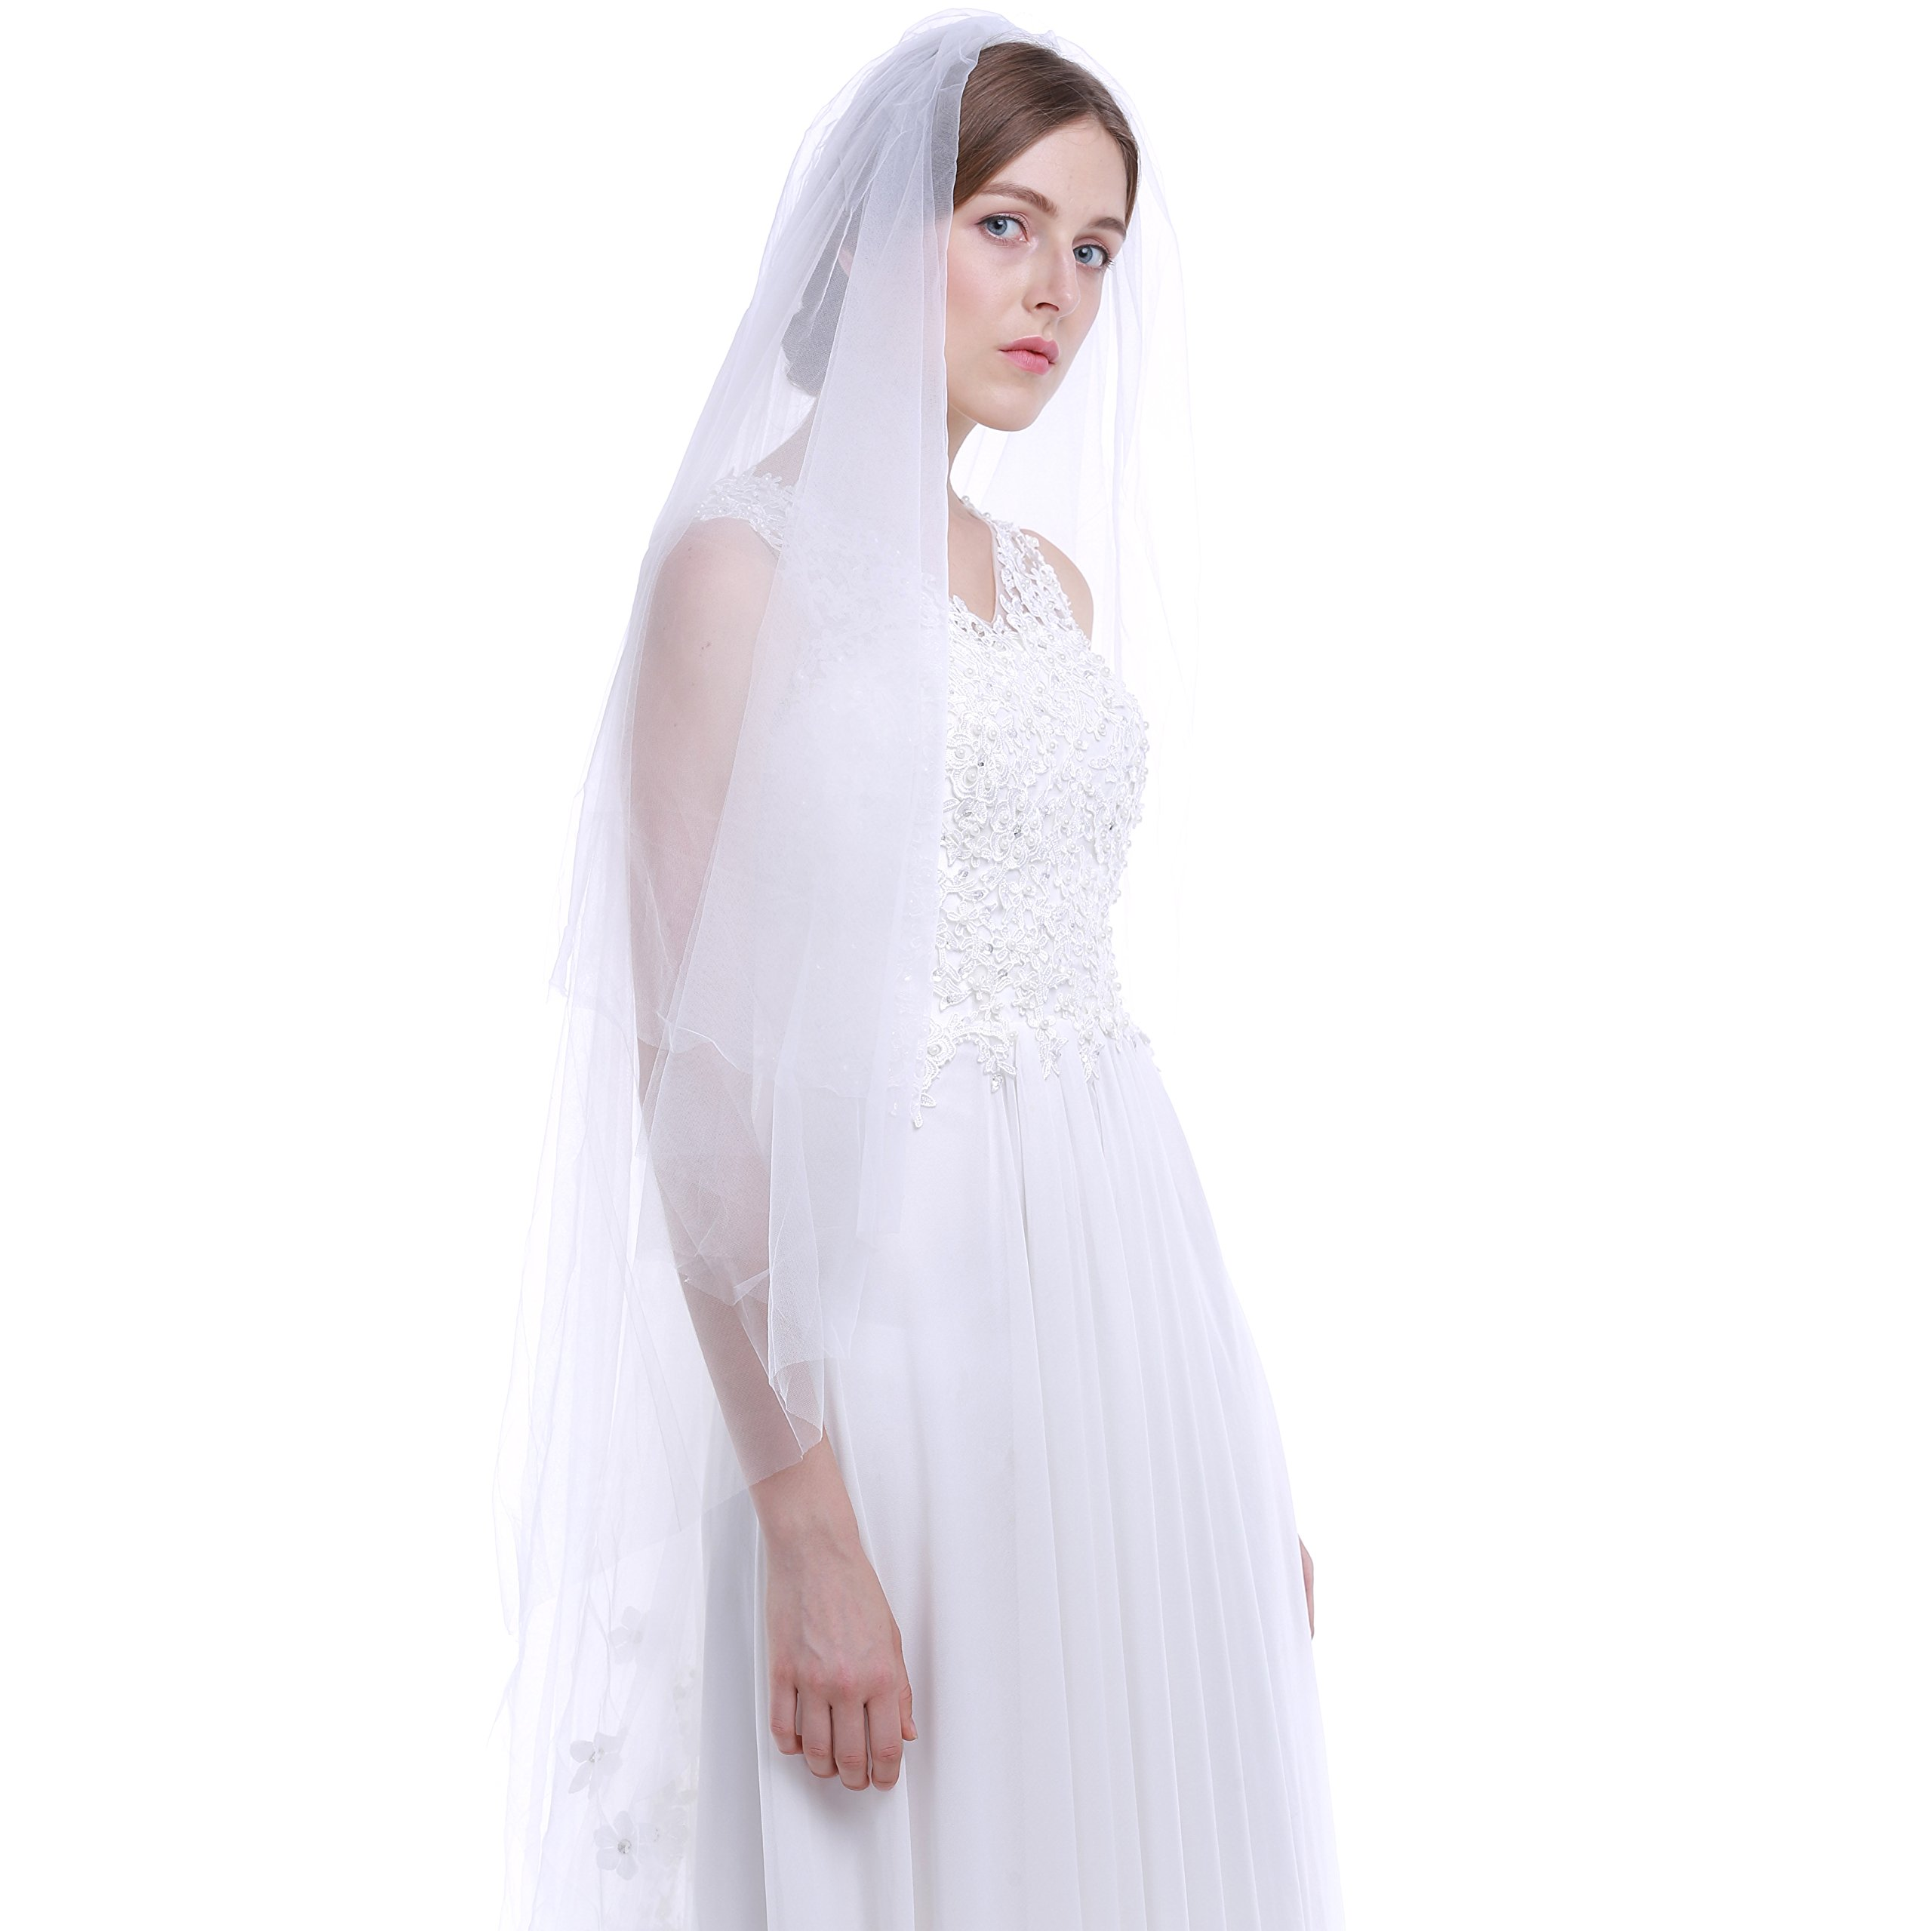 HailieBridal Women's 2 Tiers Cut Edge Floral Applique Chapel Length Wedding Veil (Off White)